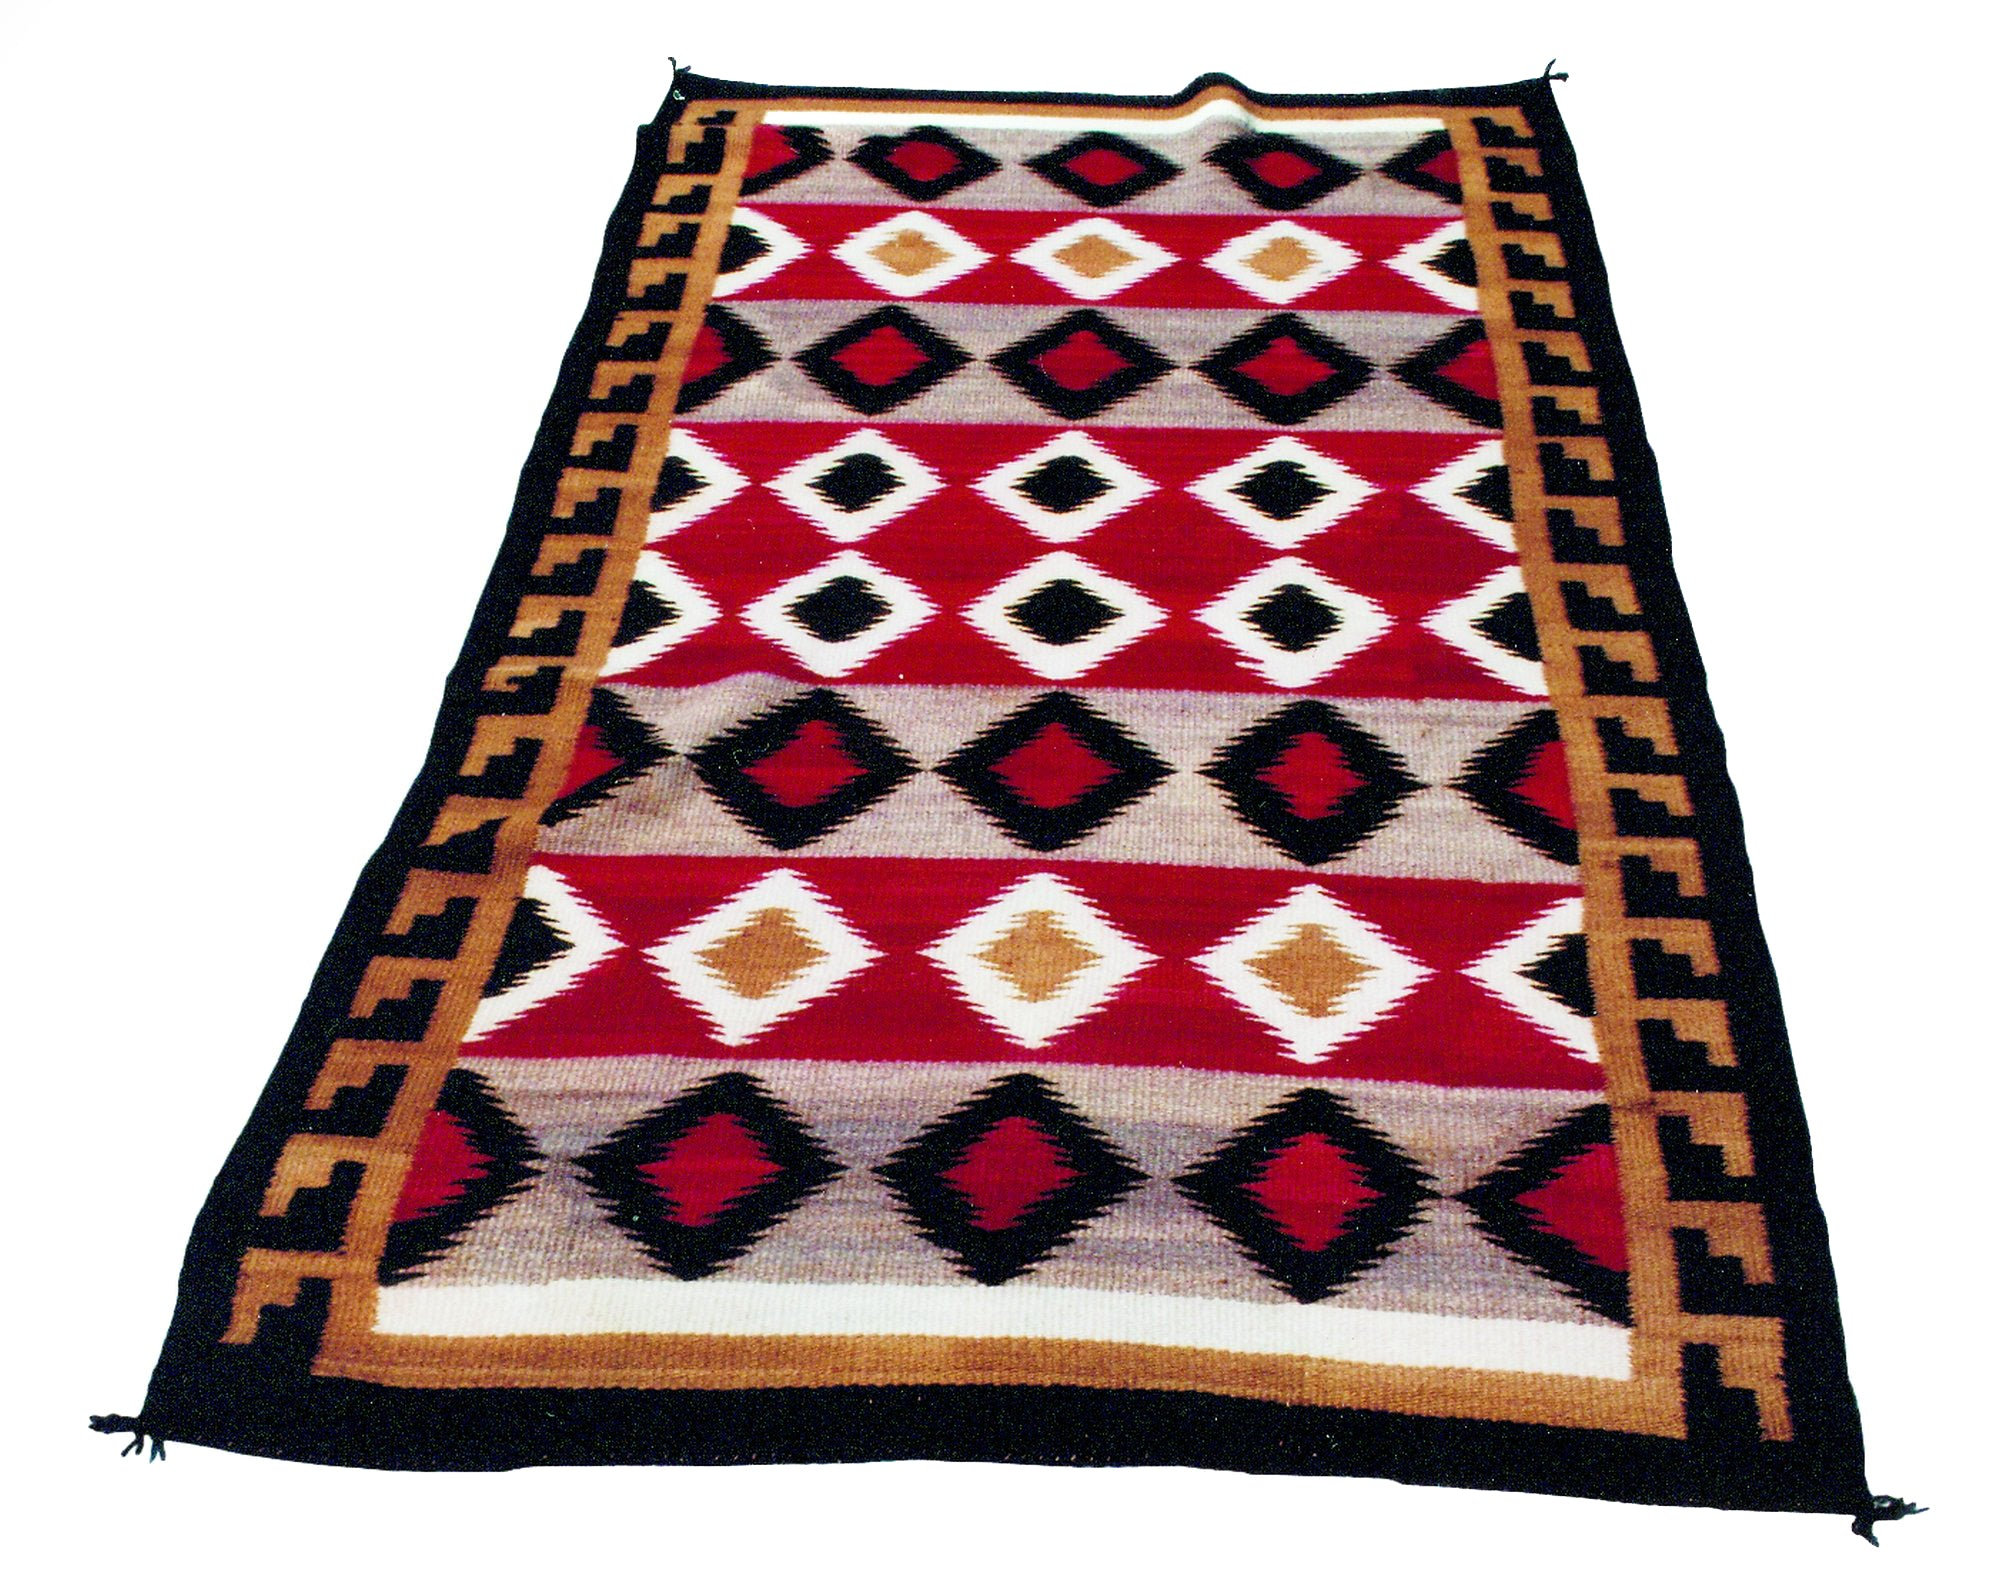 Western Region Weaving navajo, rugs, weavings